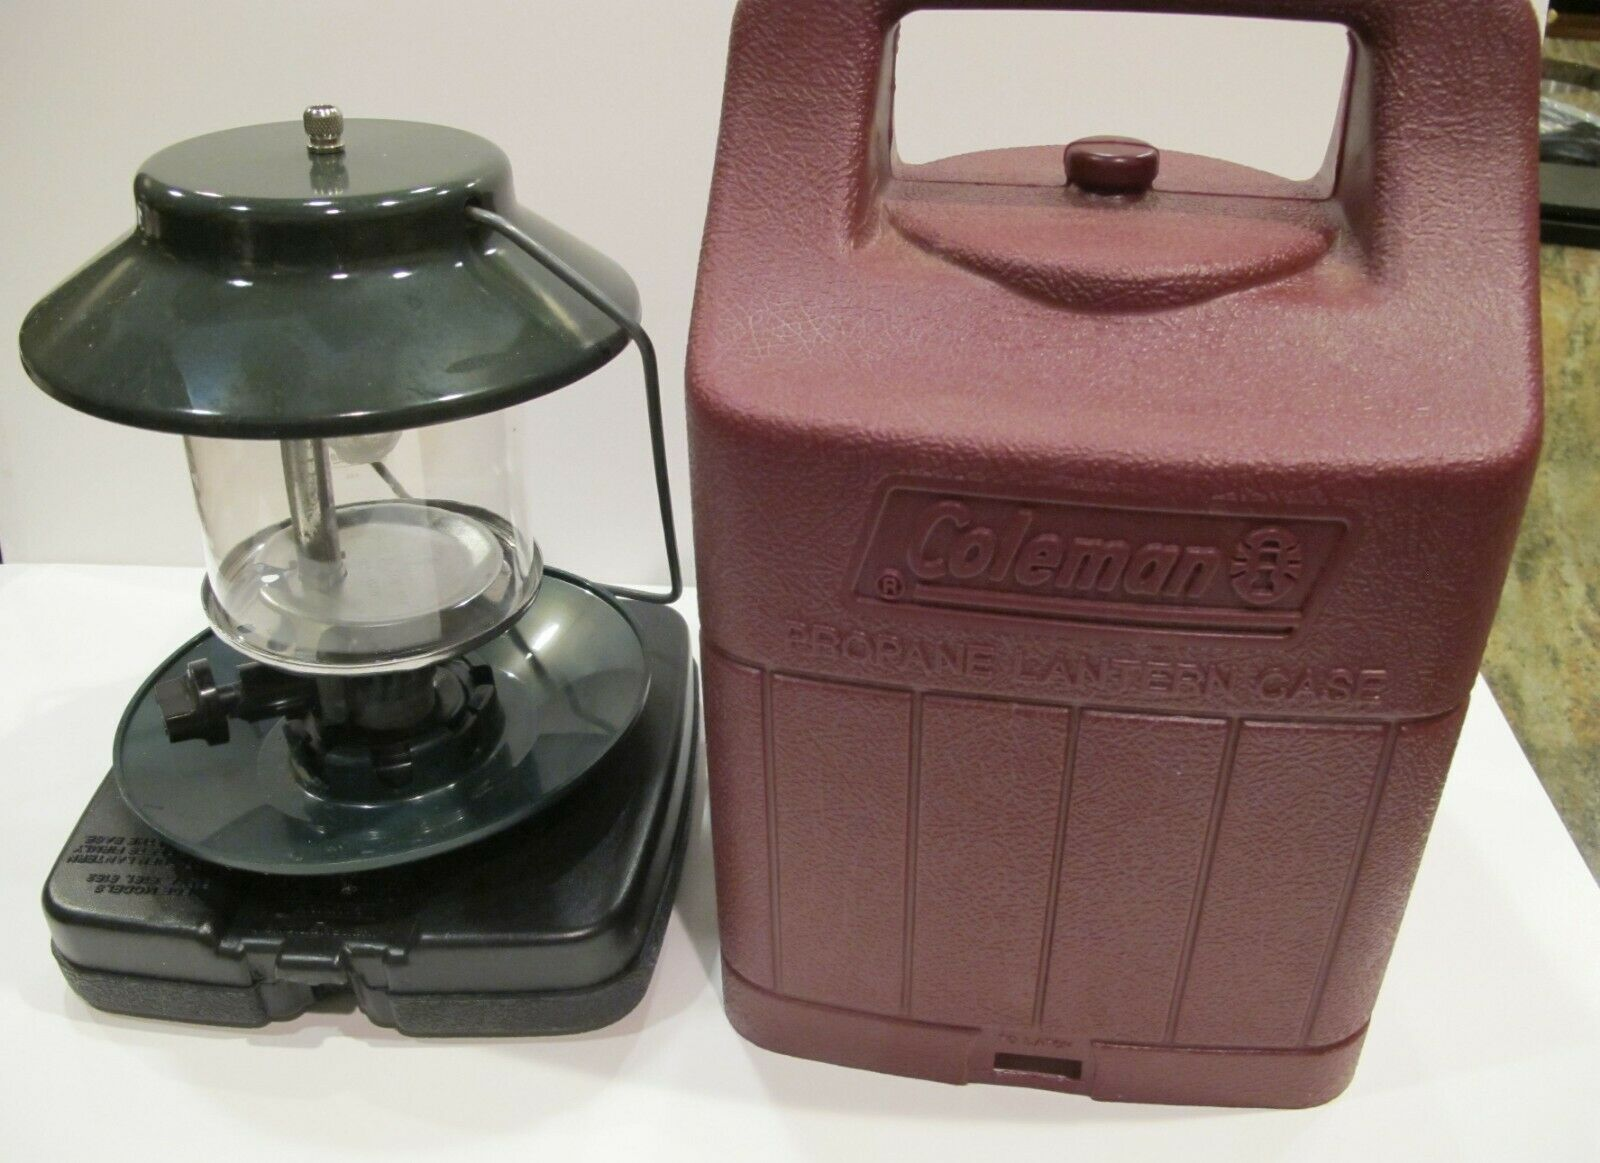 Vintage Coleman Propane Lantern 5152C700T  Double Mantle NEVER FIRED LIT NEW  counter genuine